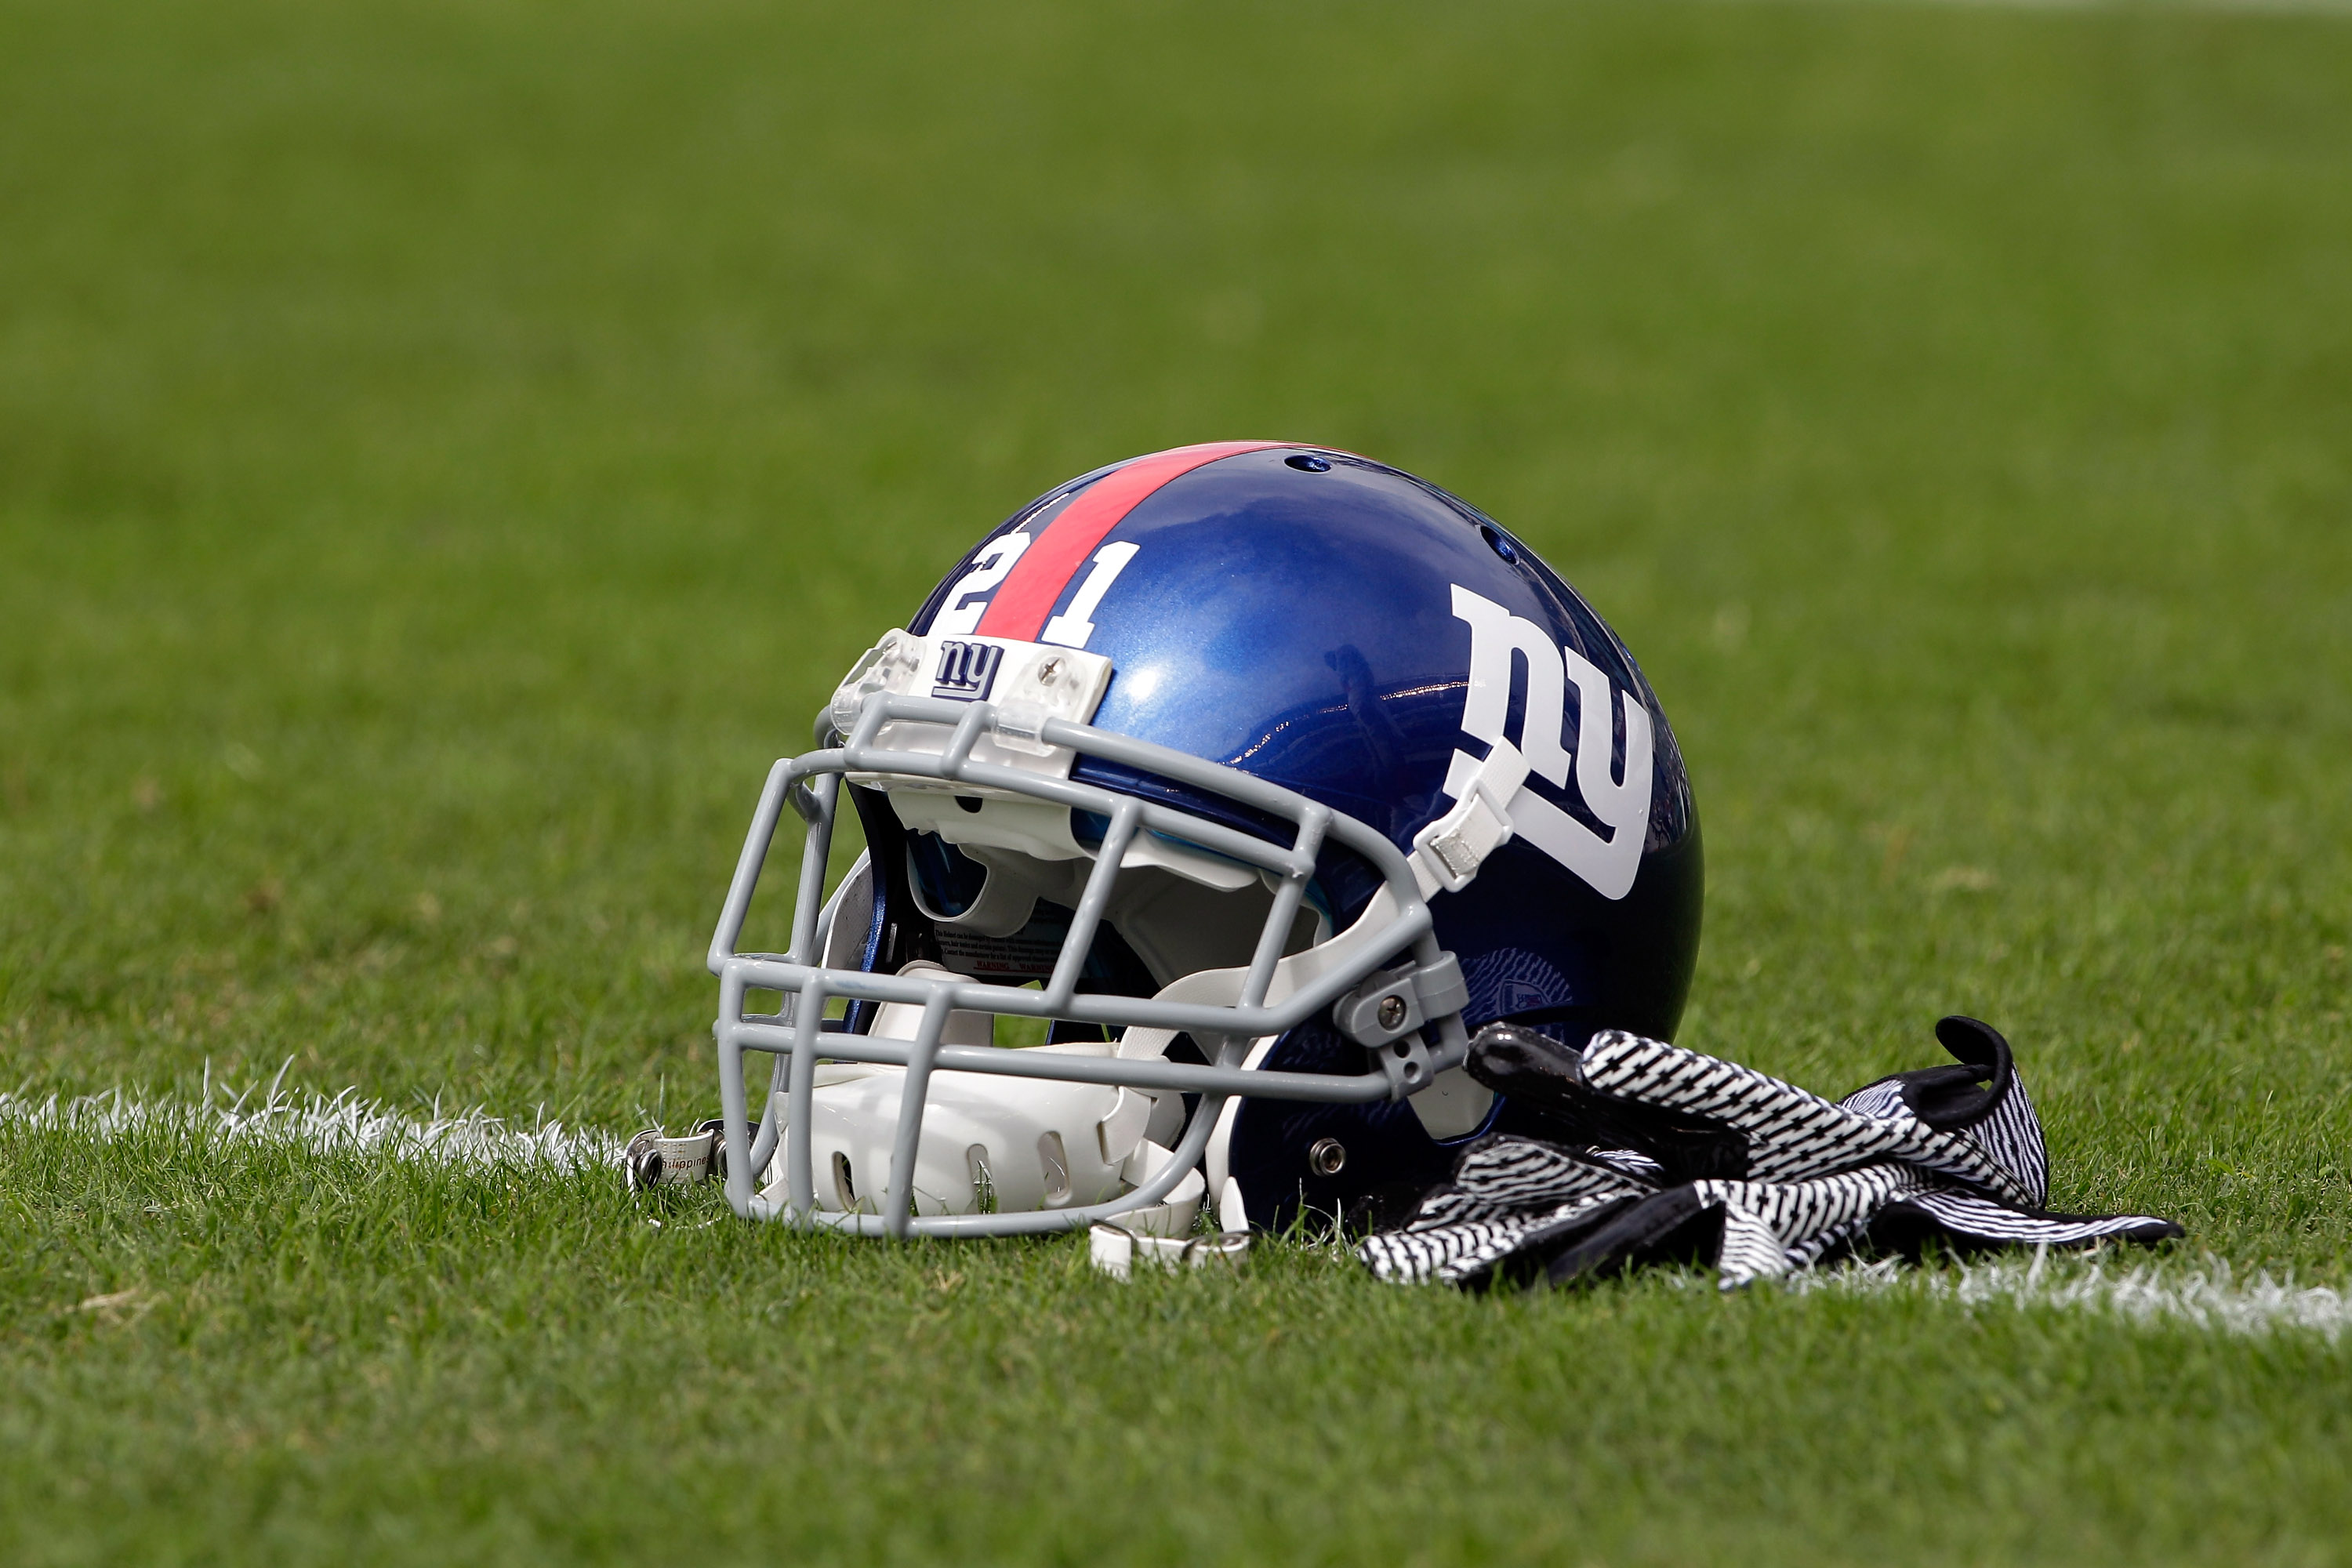 Report: Giants have no new positive COVID-19 tests